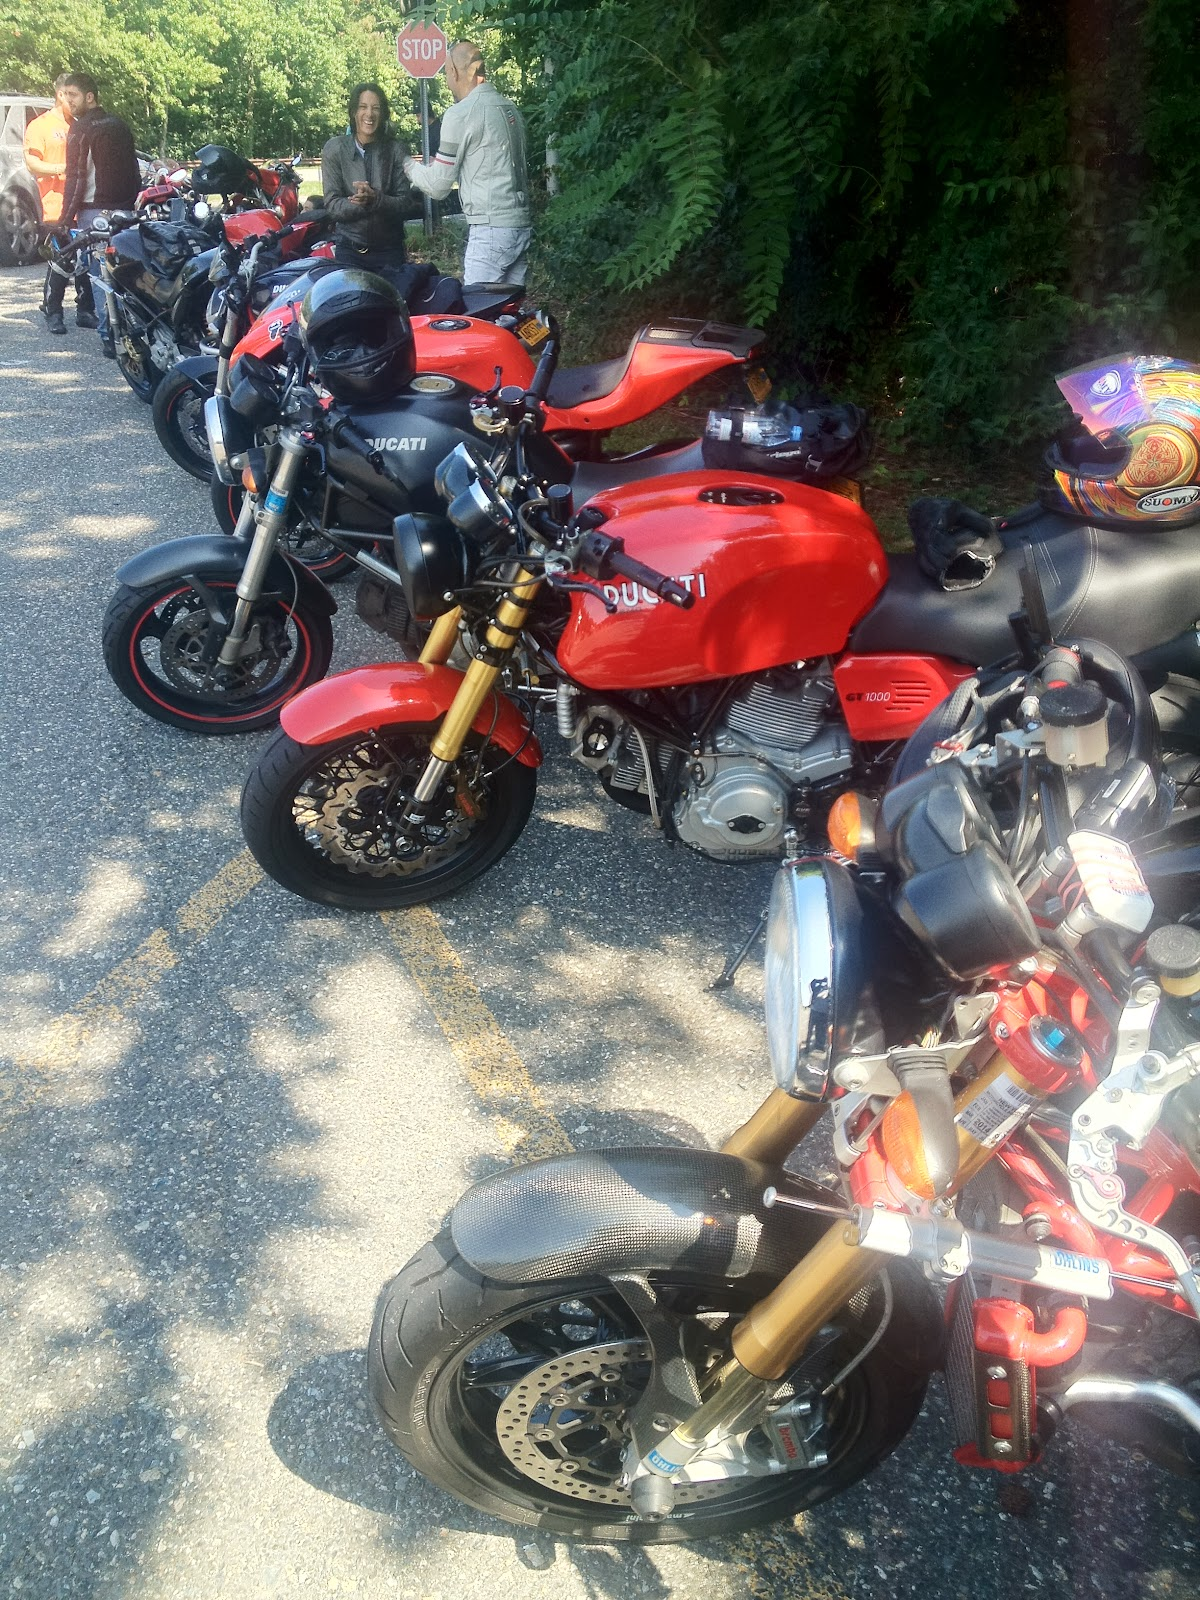 Ducati Travelogue of Tigh Loughhead's Motorcycle Adventures